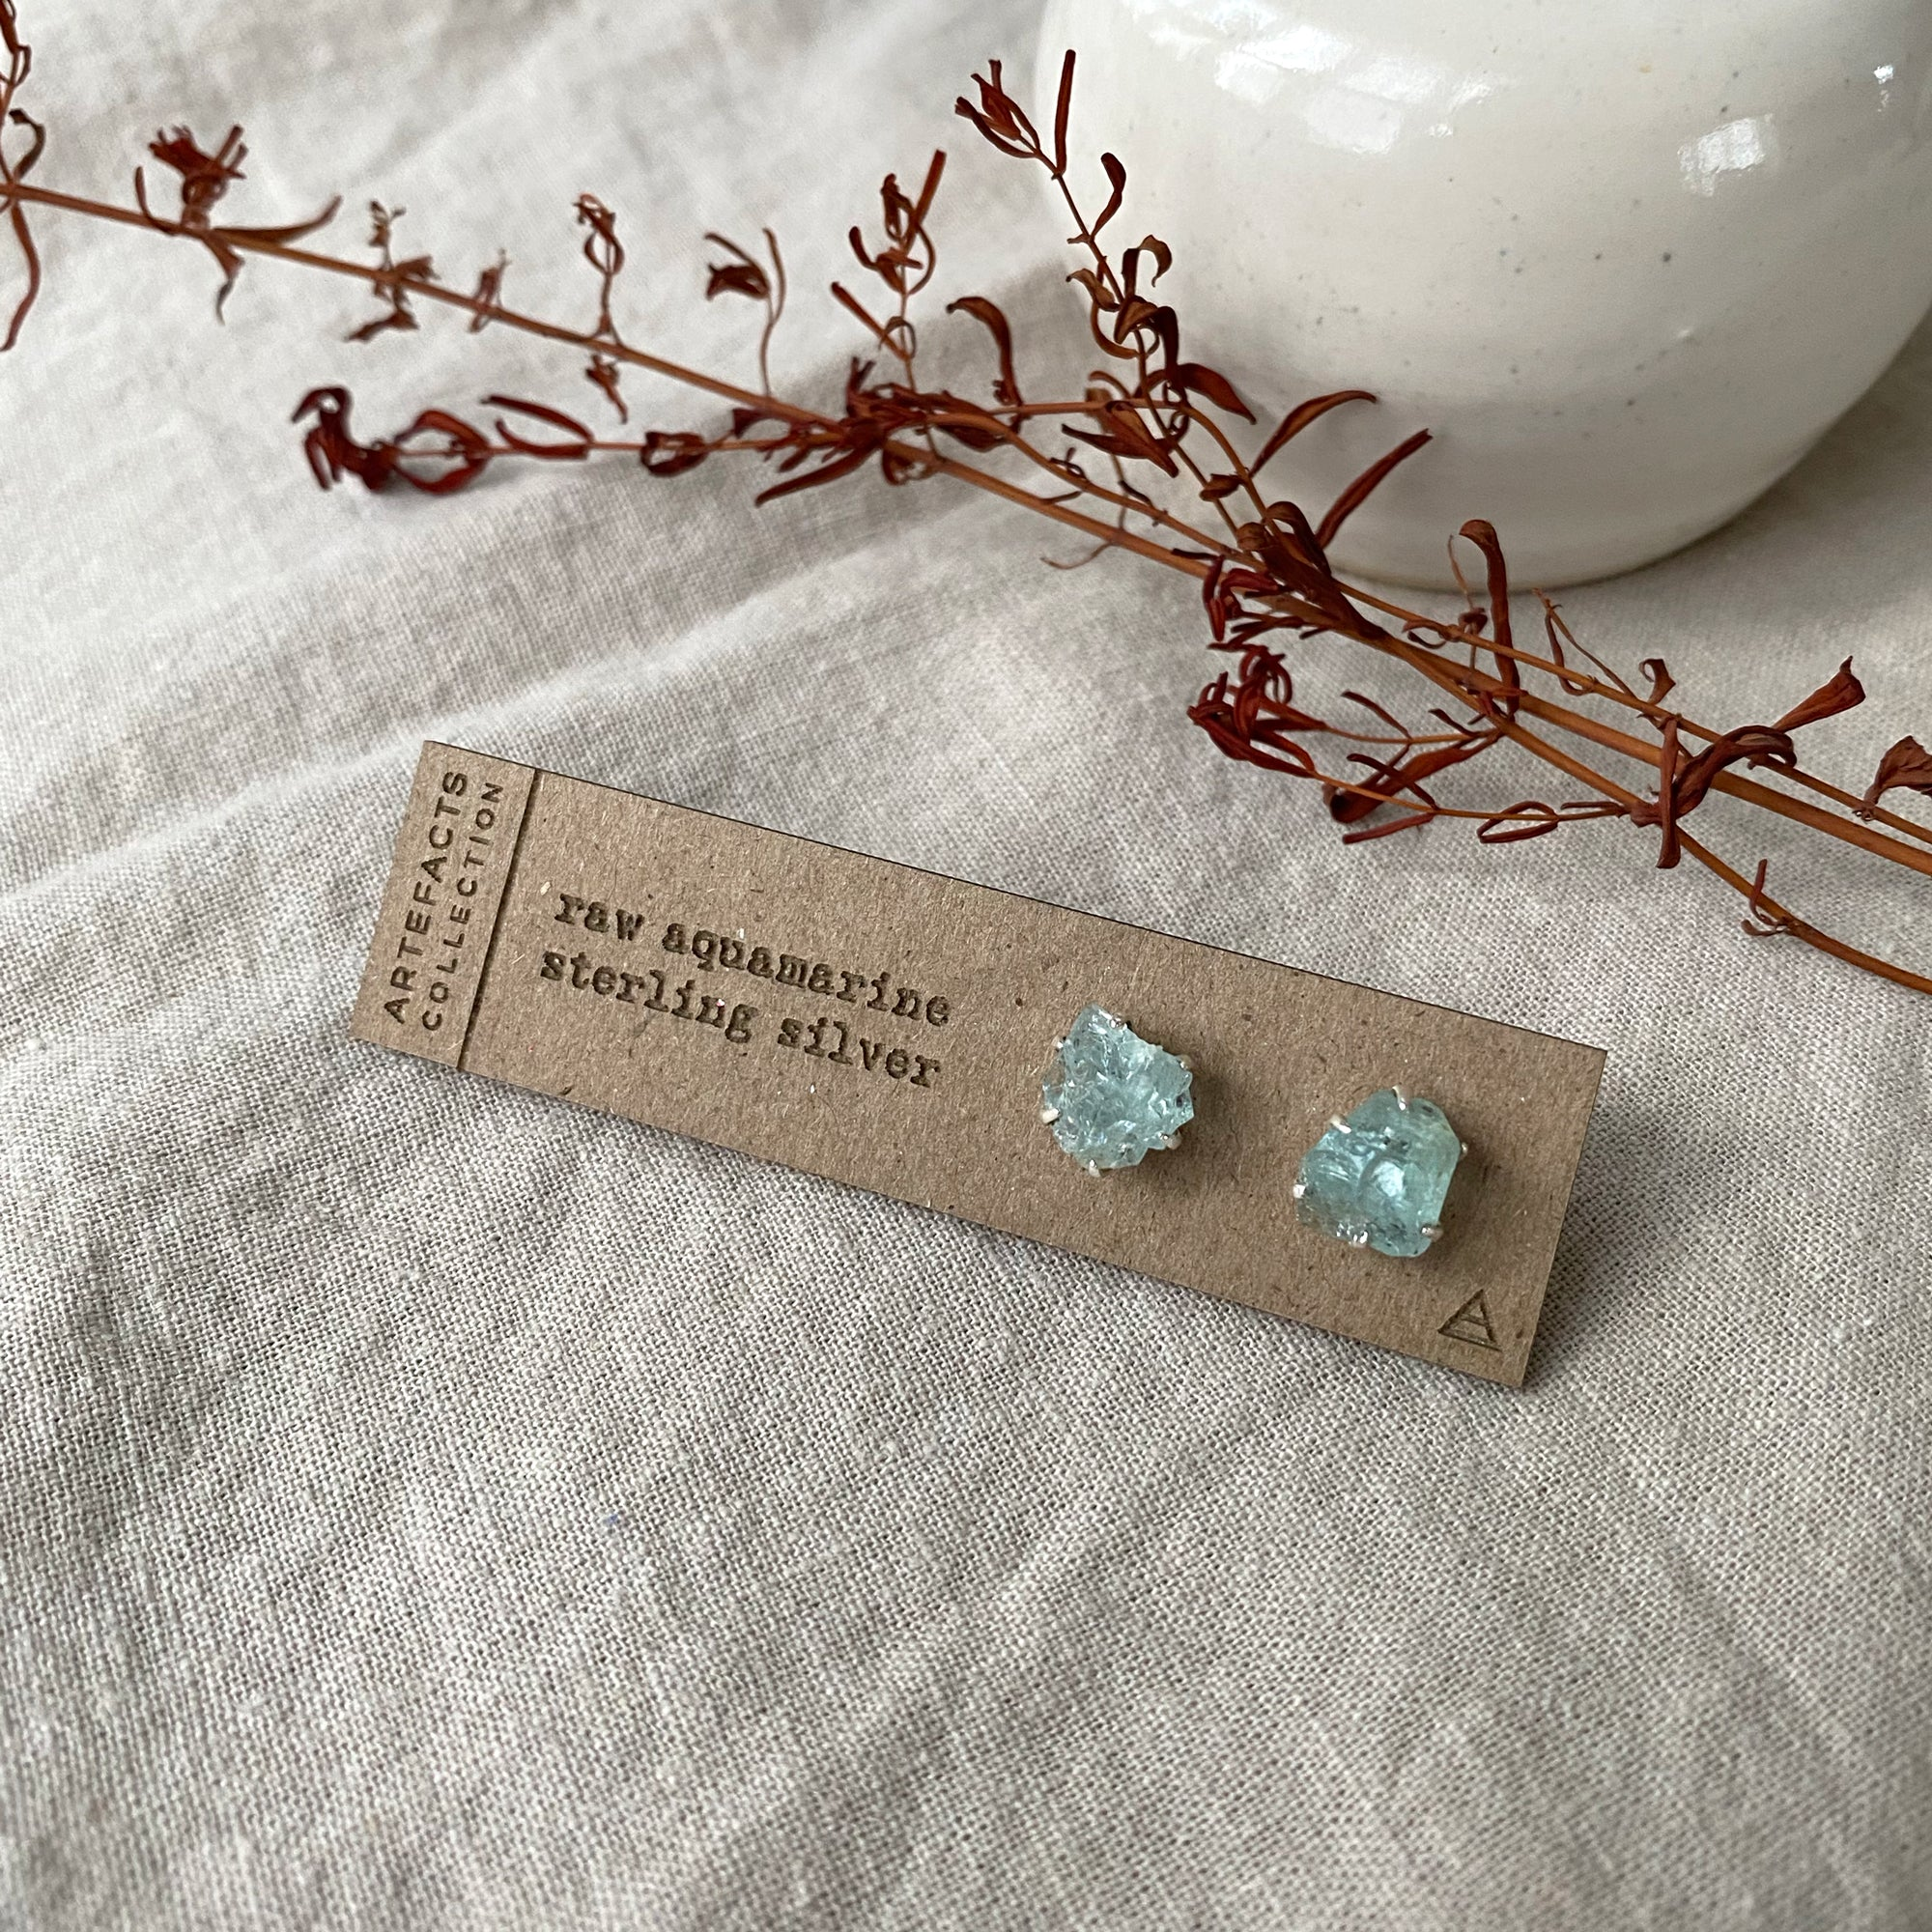 Raw Aquamarine Pronged Earrings